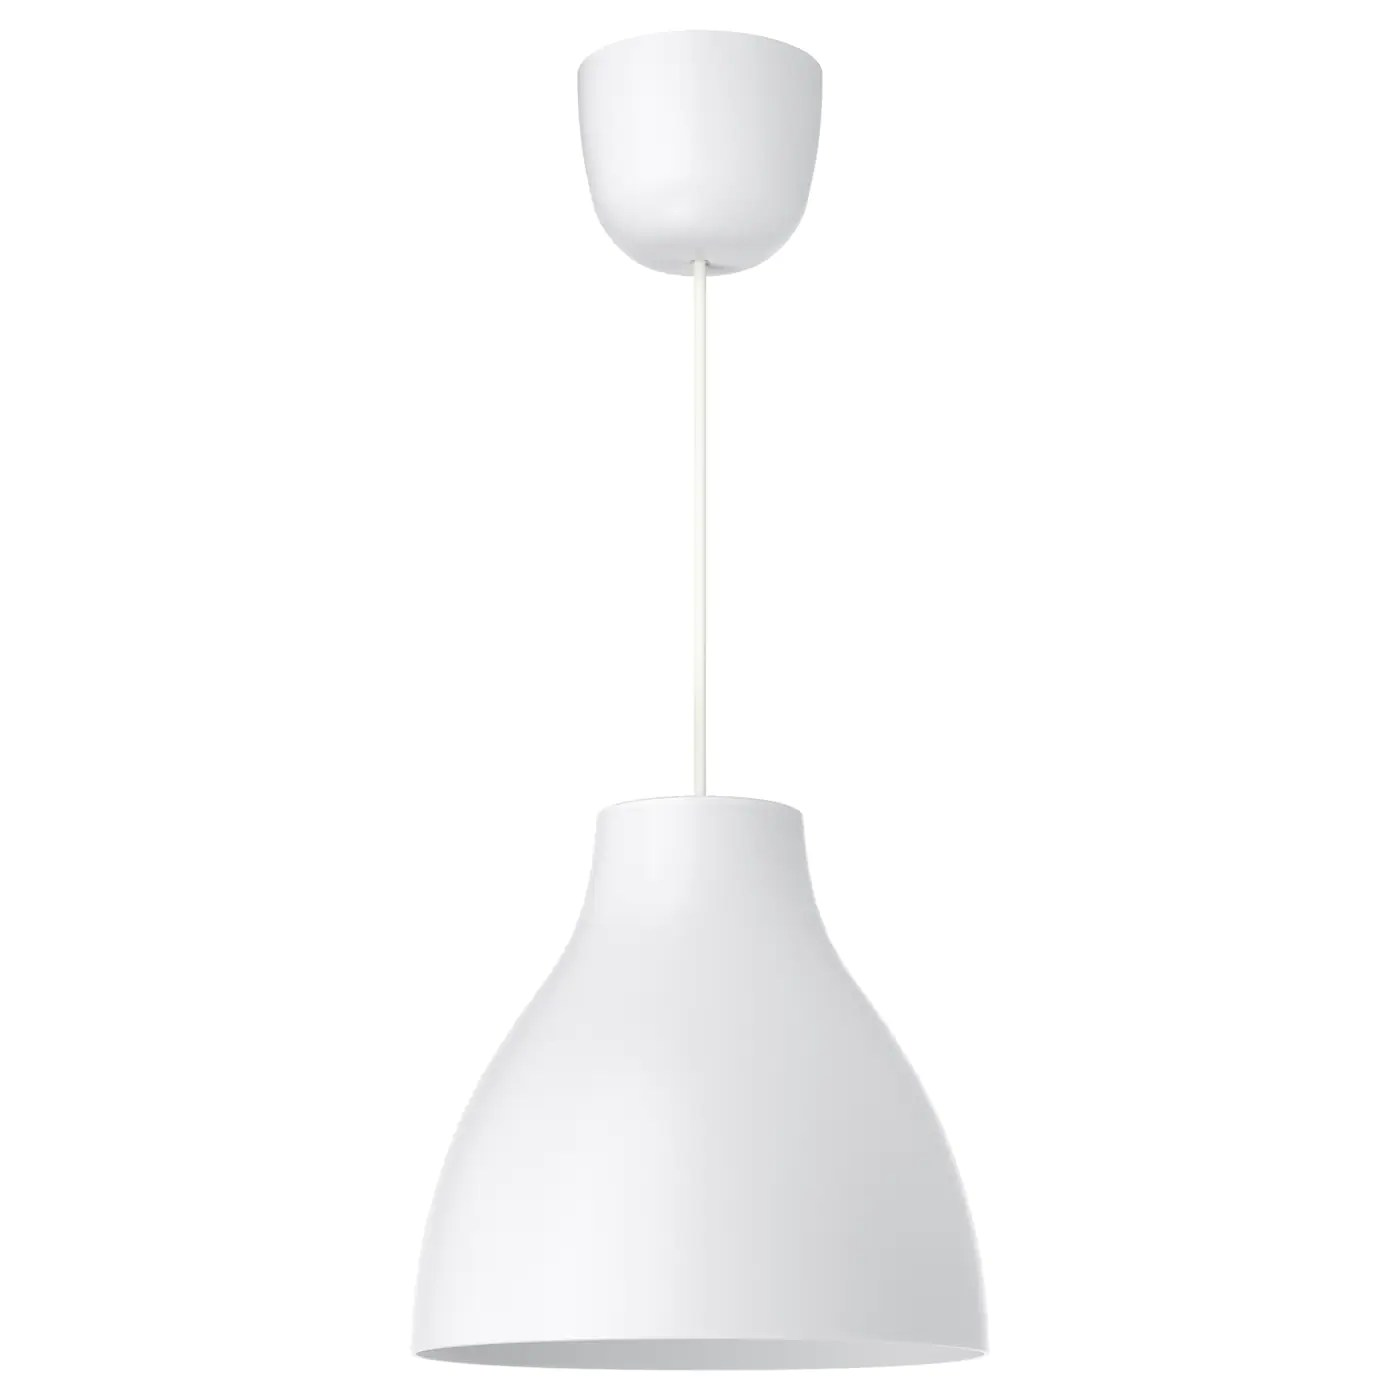 Lamparas Cocina Ikea Lighting And Lamps Led Lighting And Lamps Ikea